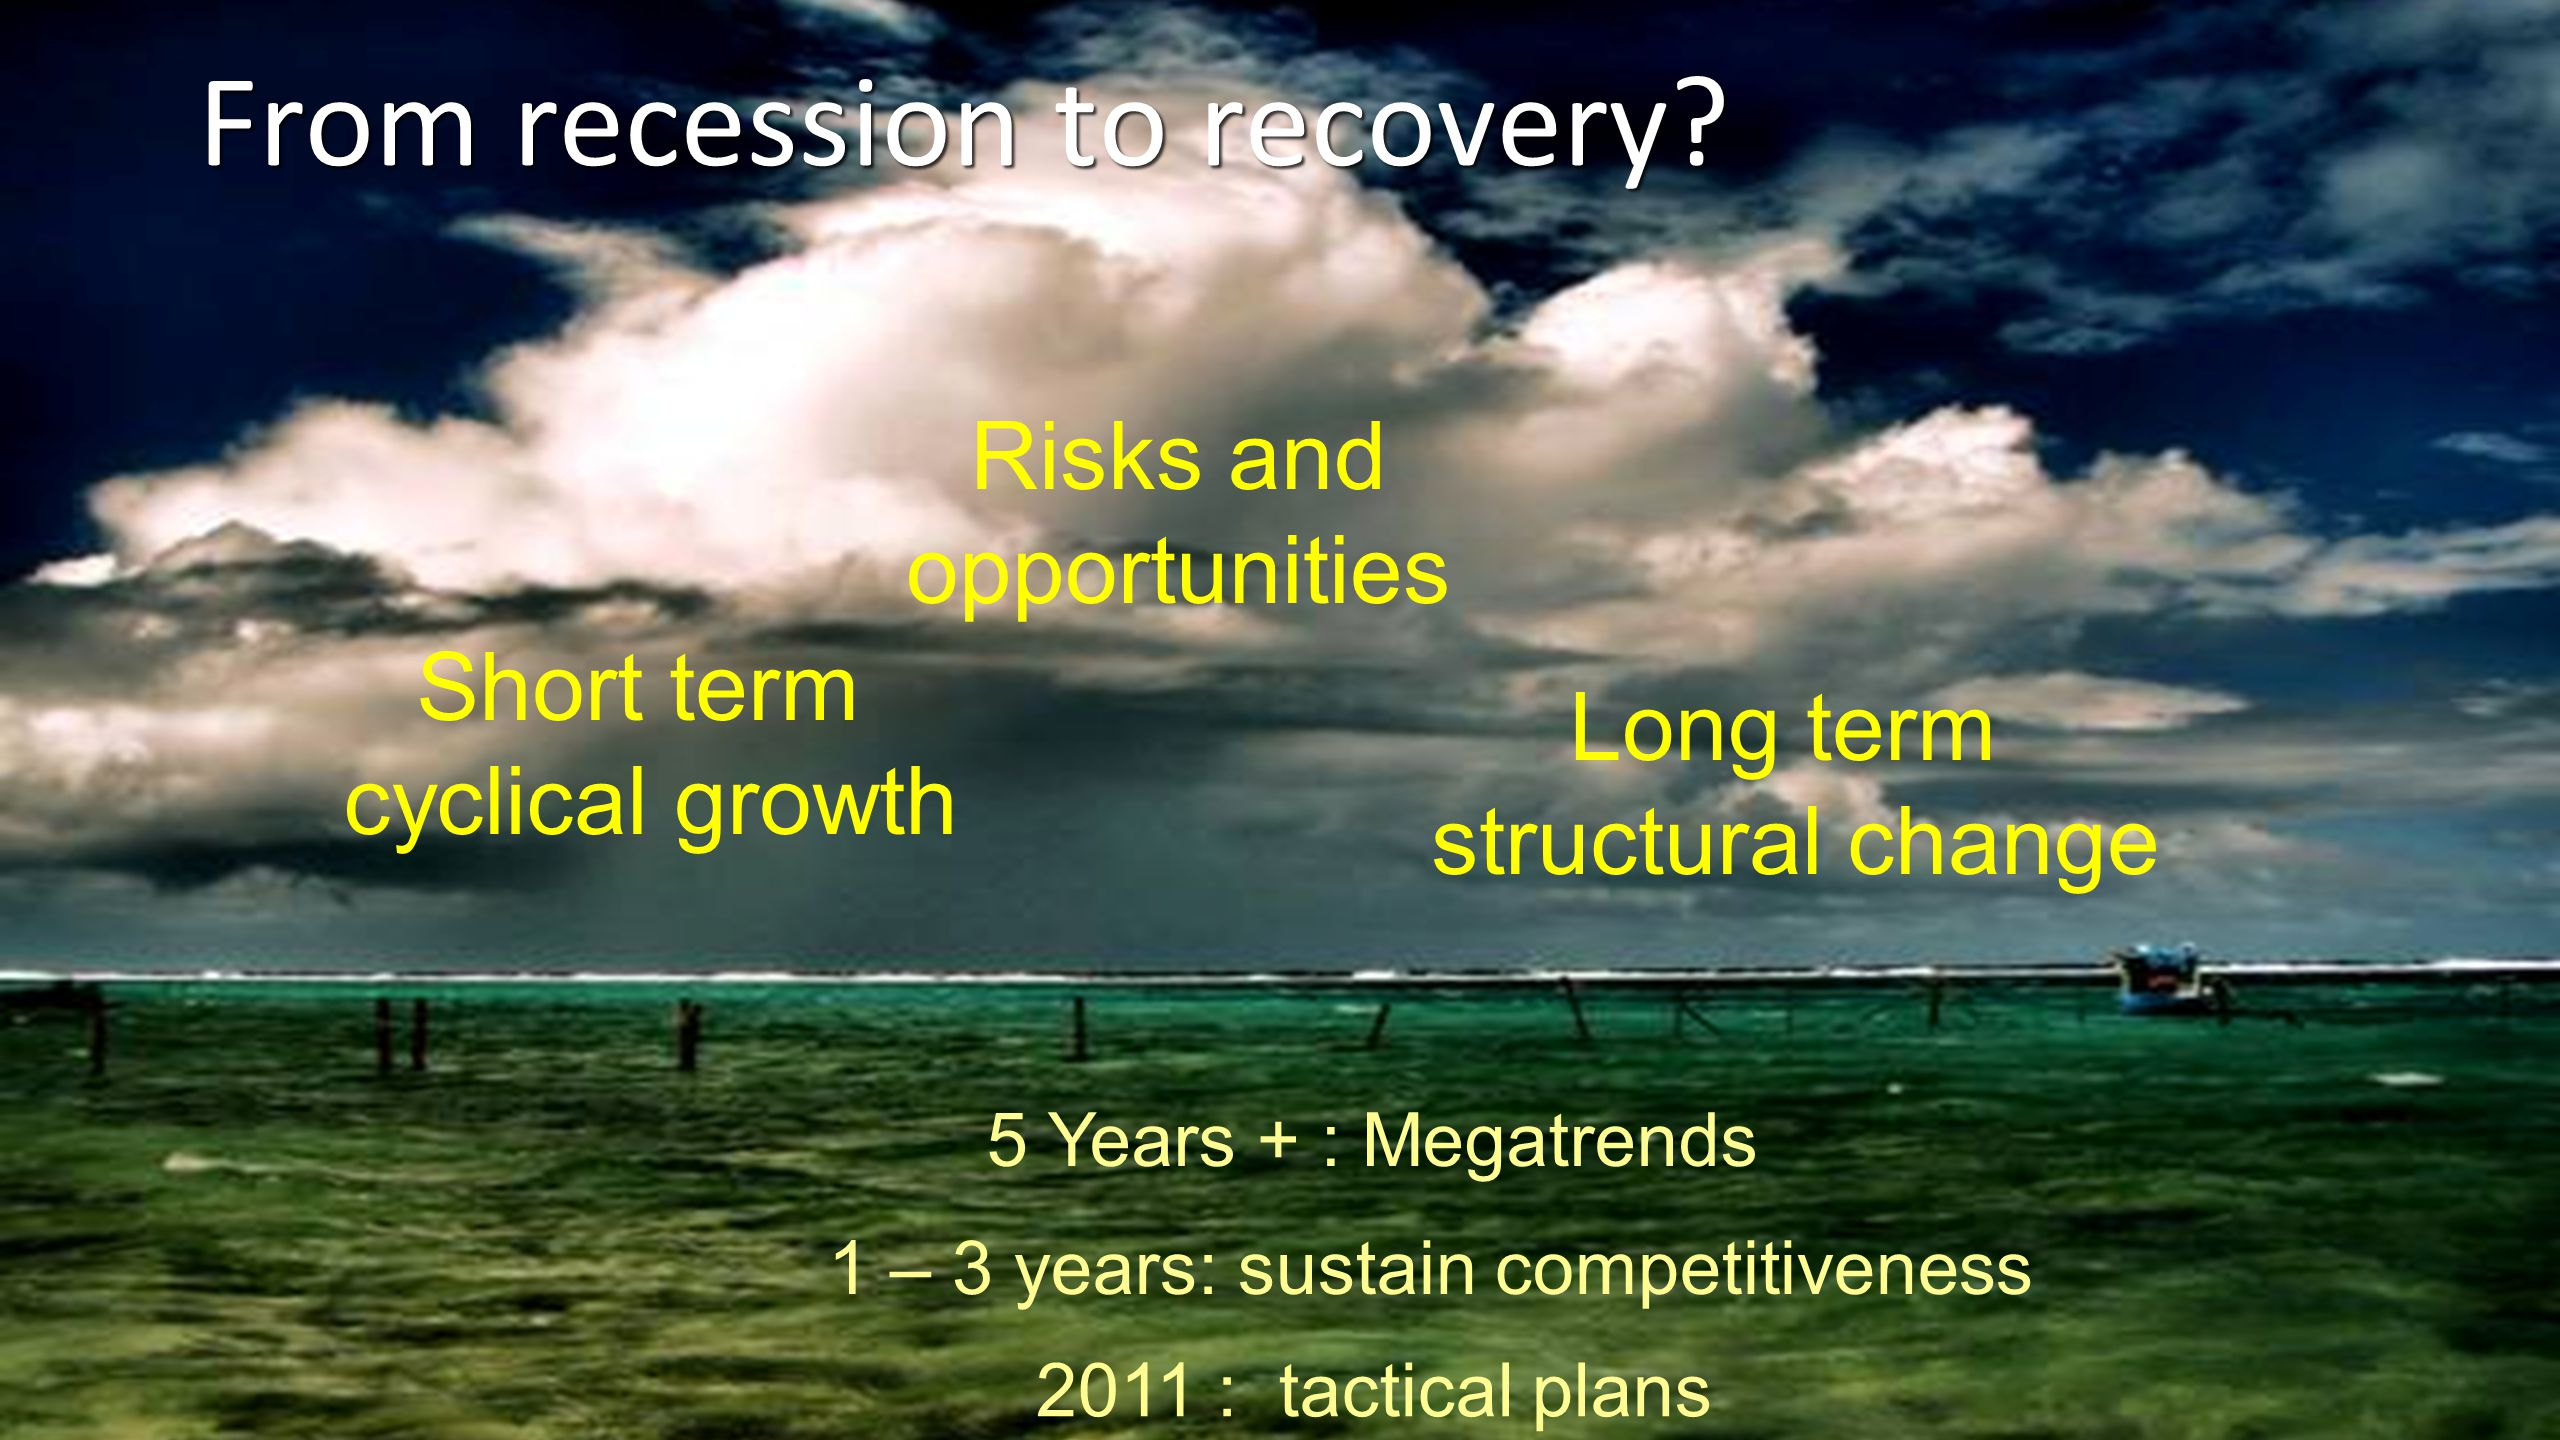 From recession to recovery? Short term cyclical growth Long term structural change Risks and opportunities 2011 : tactical plans 1 – 3 years: sustain